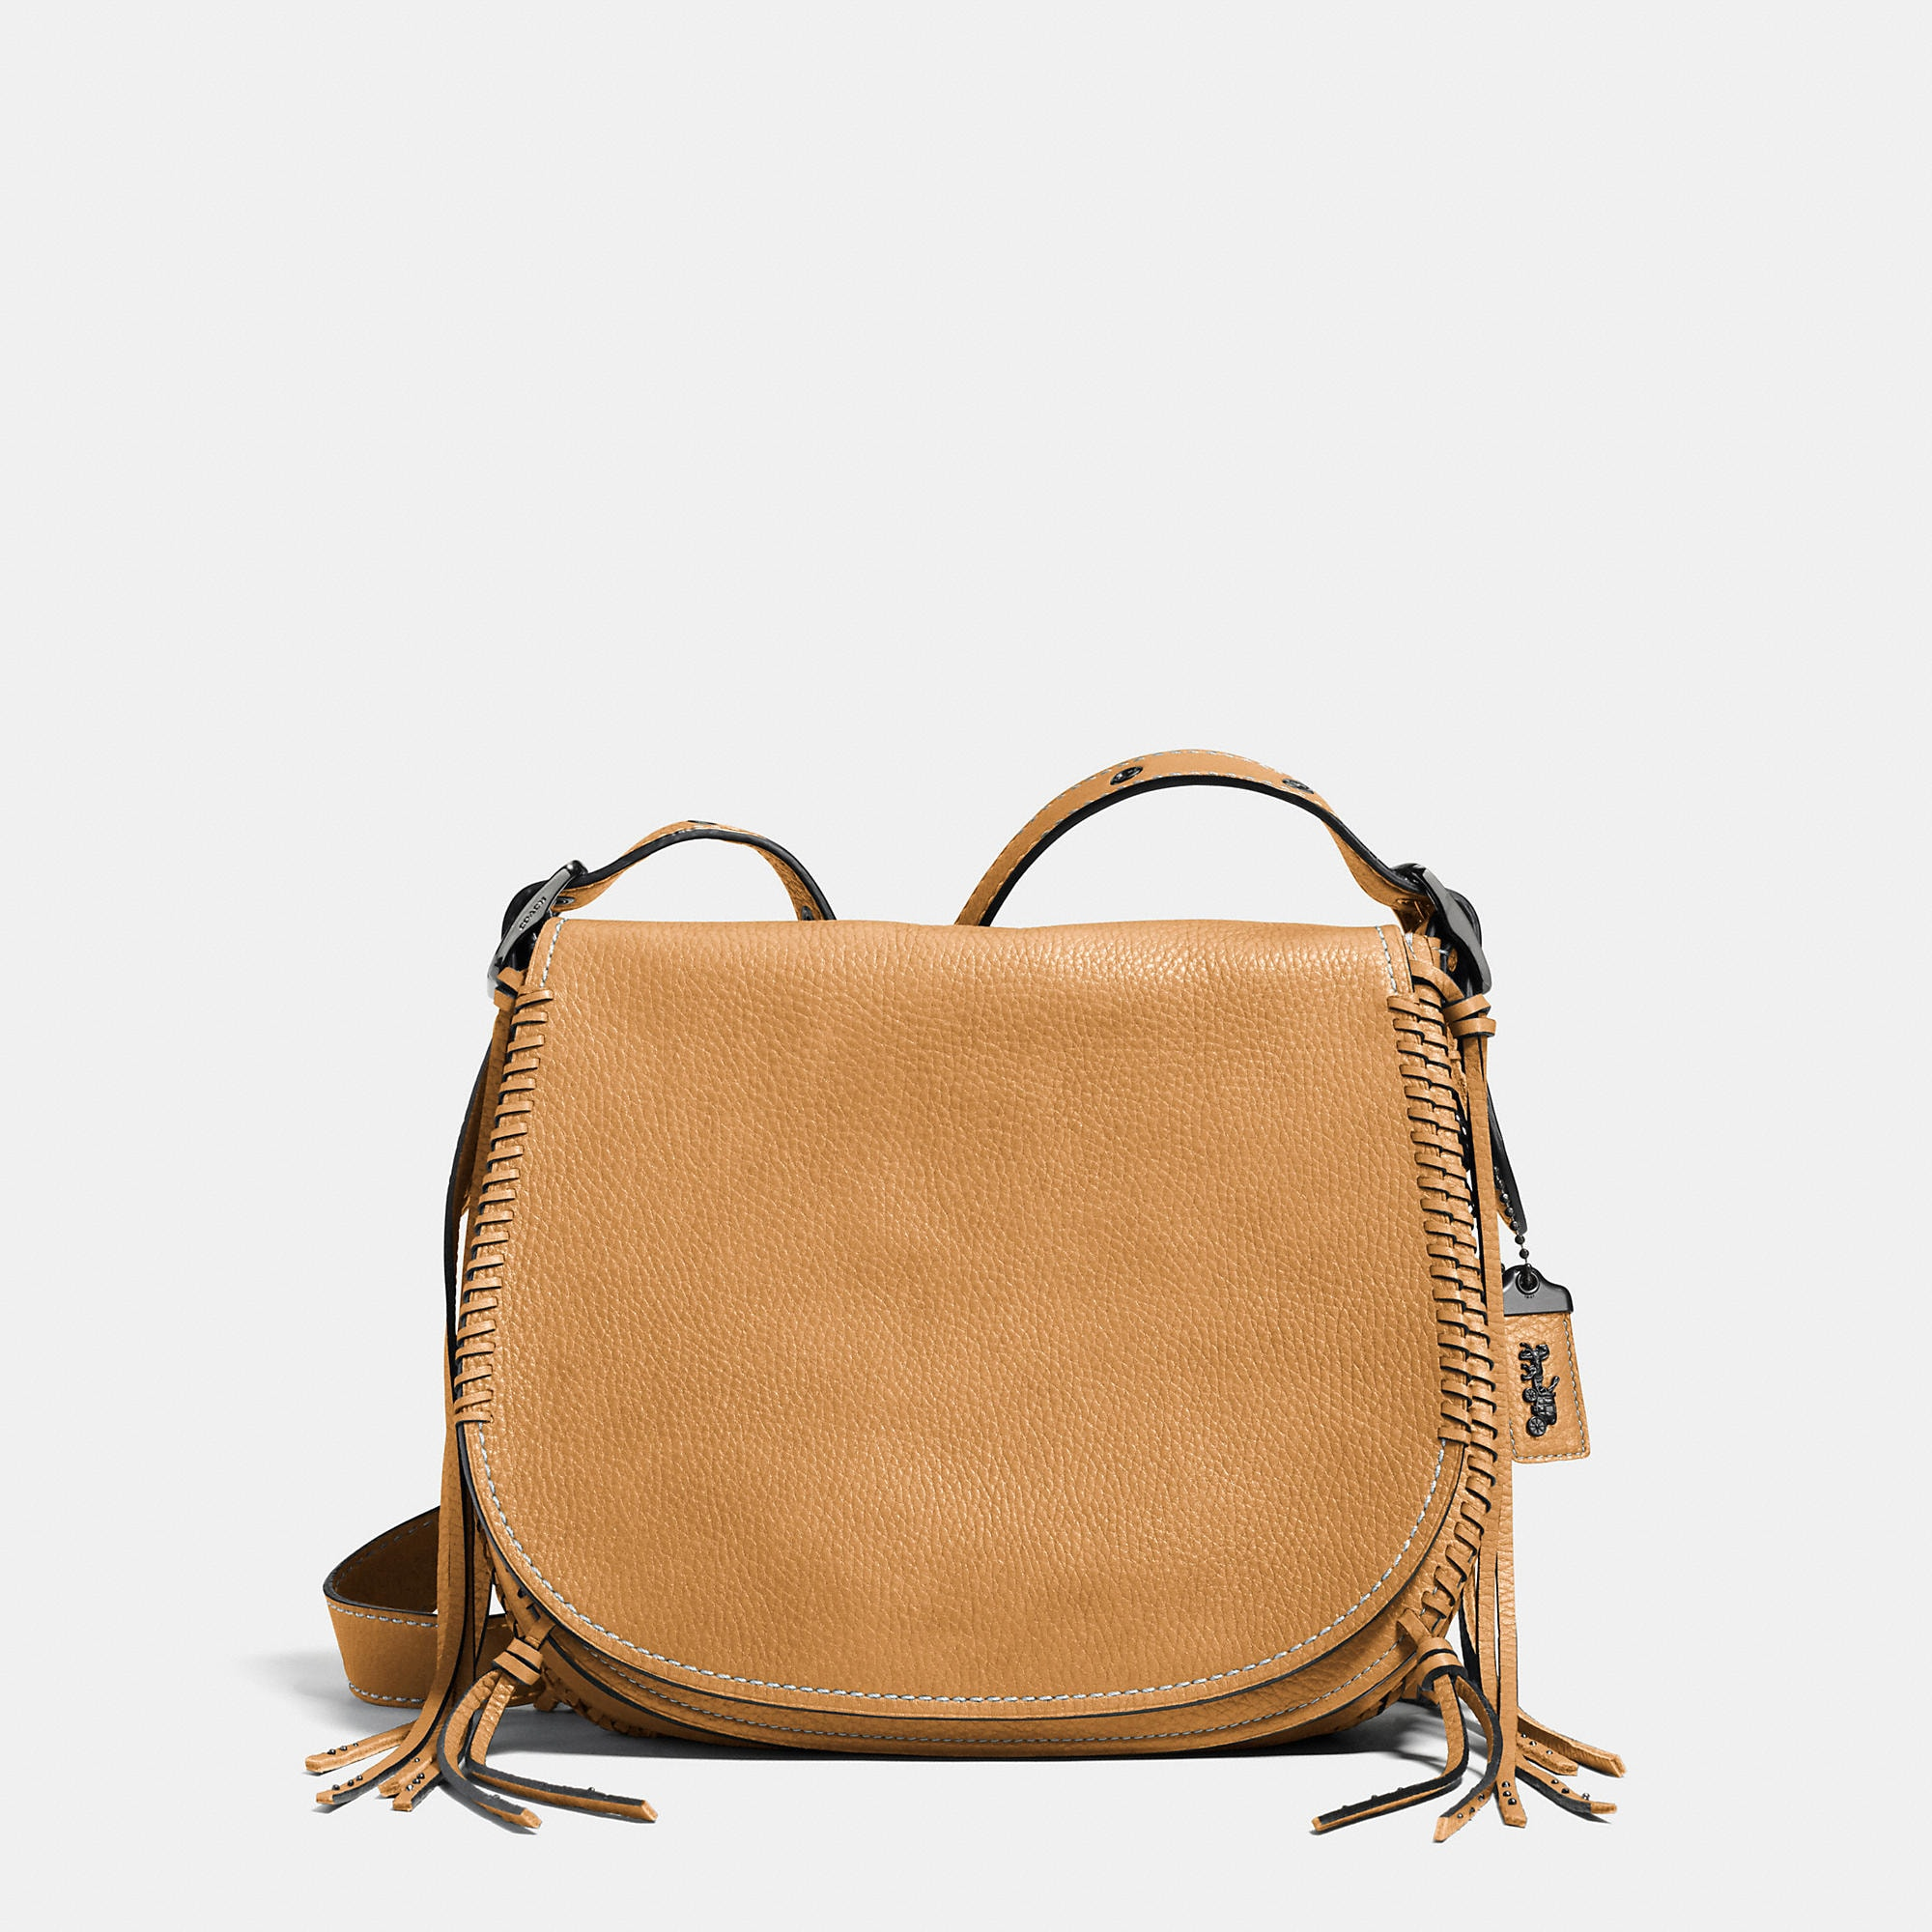 Coach 1941 Whiplash Saddle Bag In Leather